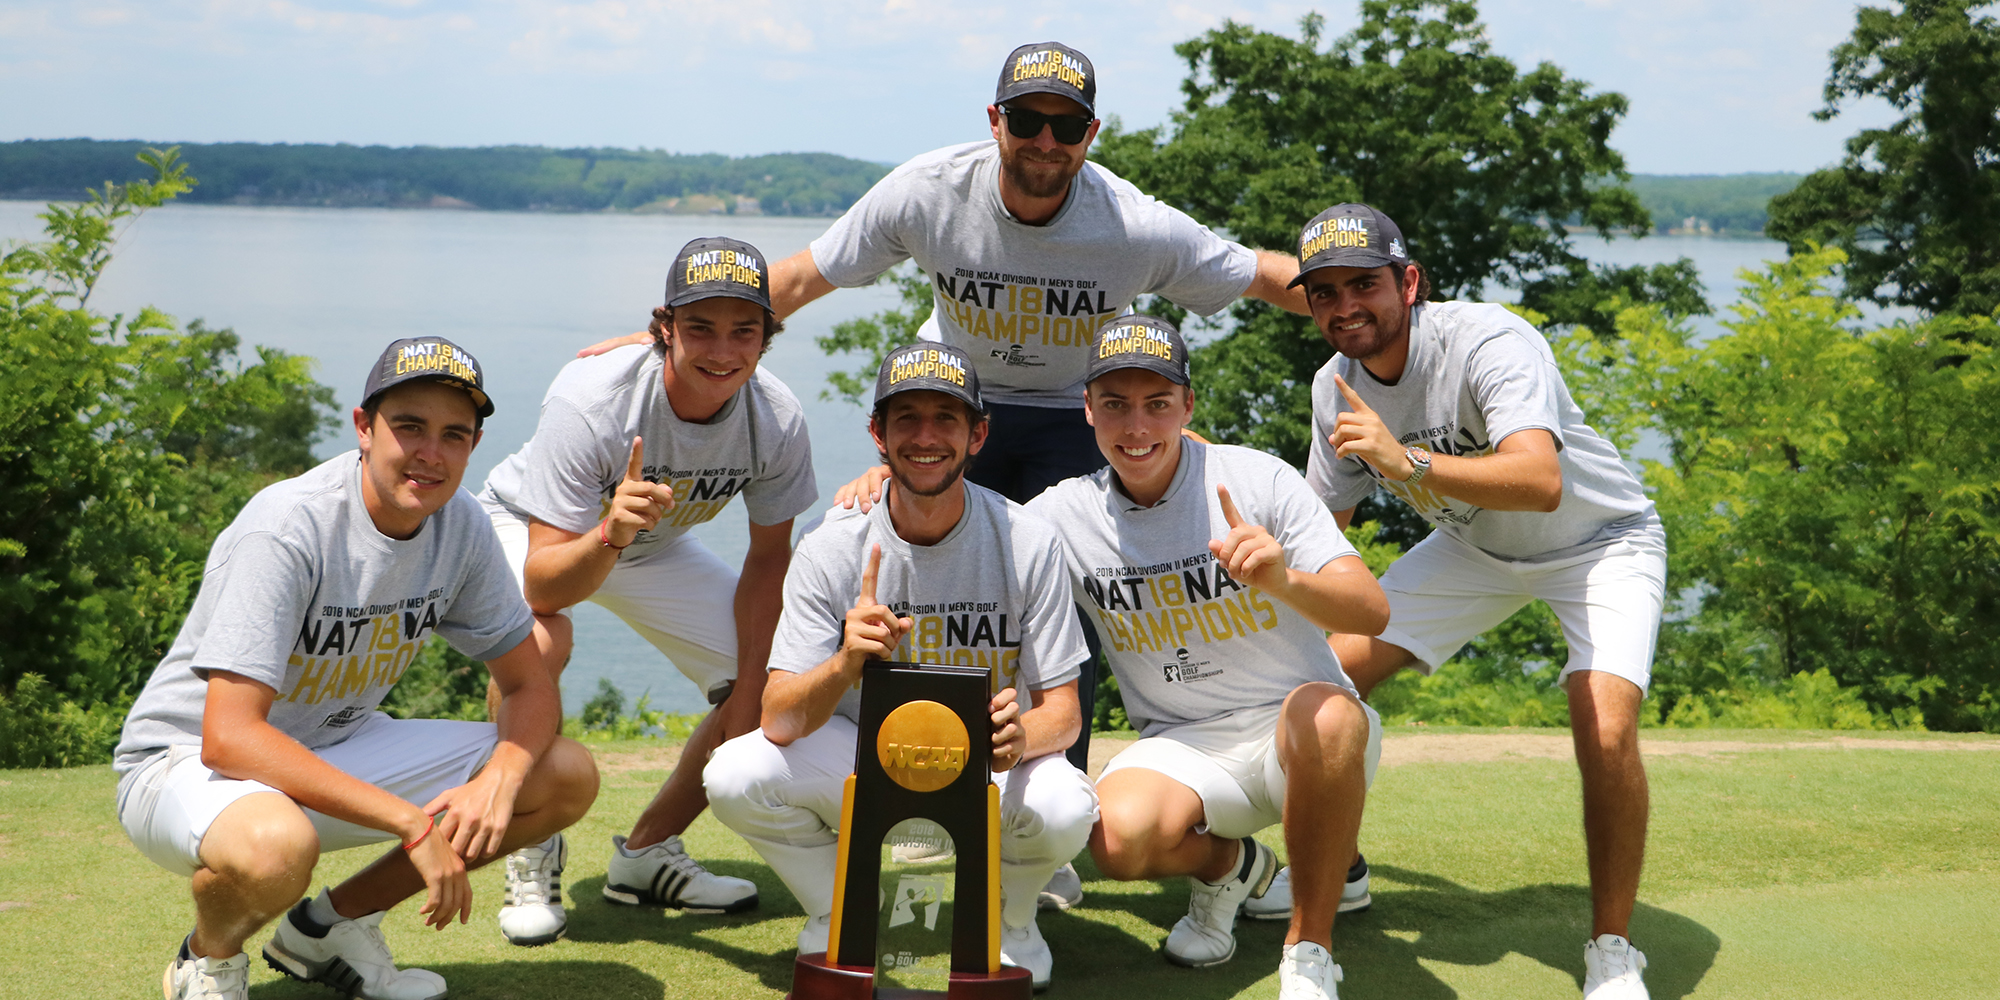 Men's Golf Bustos' a Move to Capture 2018 NCAA Division II National Title